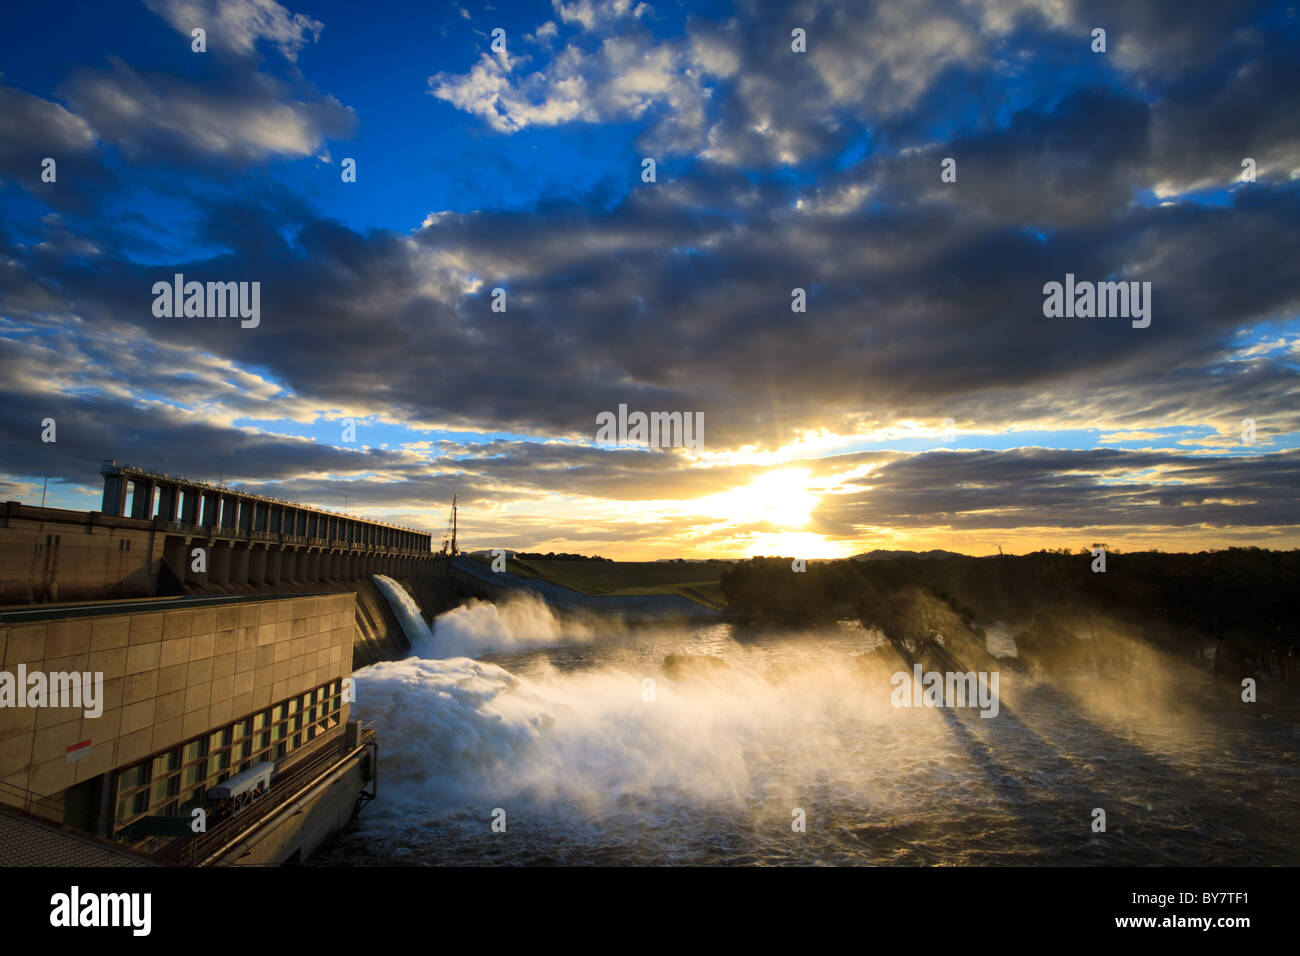 Hume Weir Stock Photos & Hume Weir Stock Images - Alamy